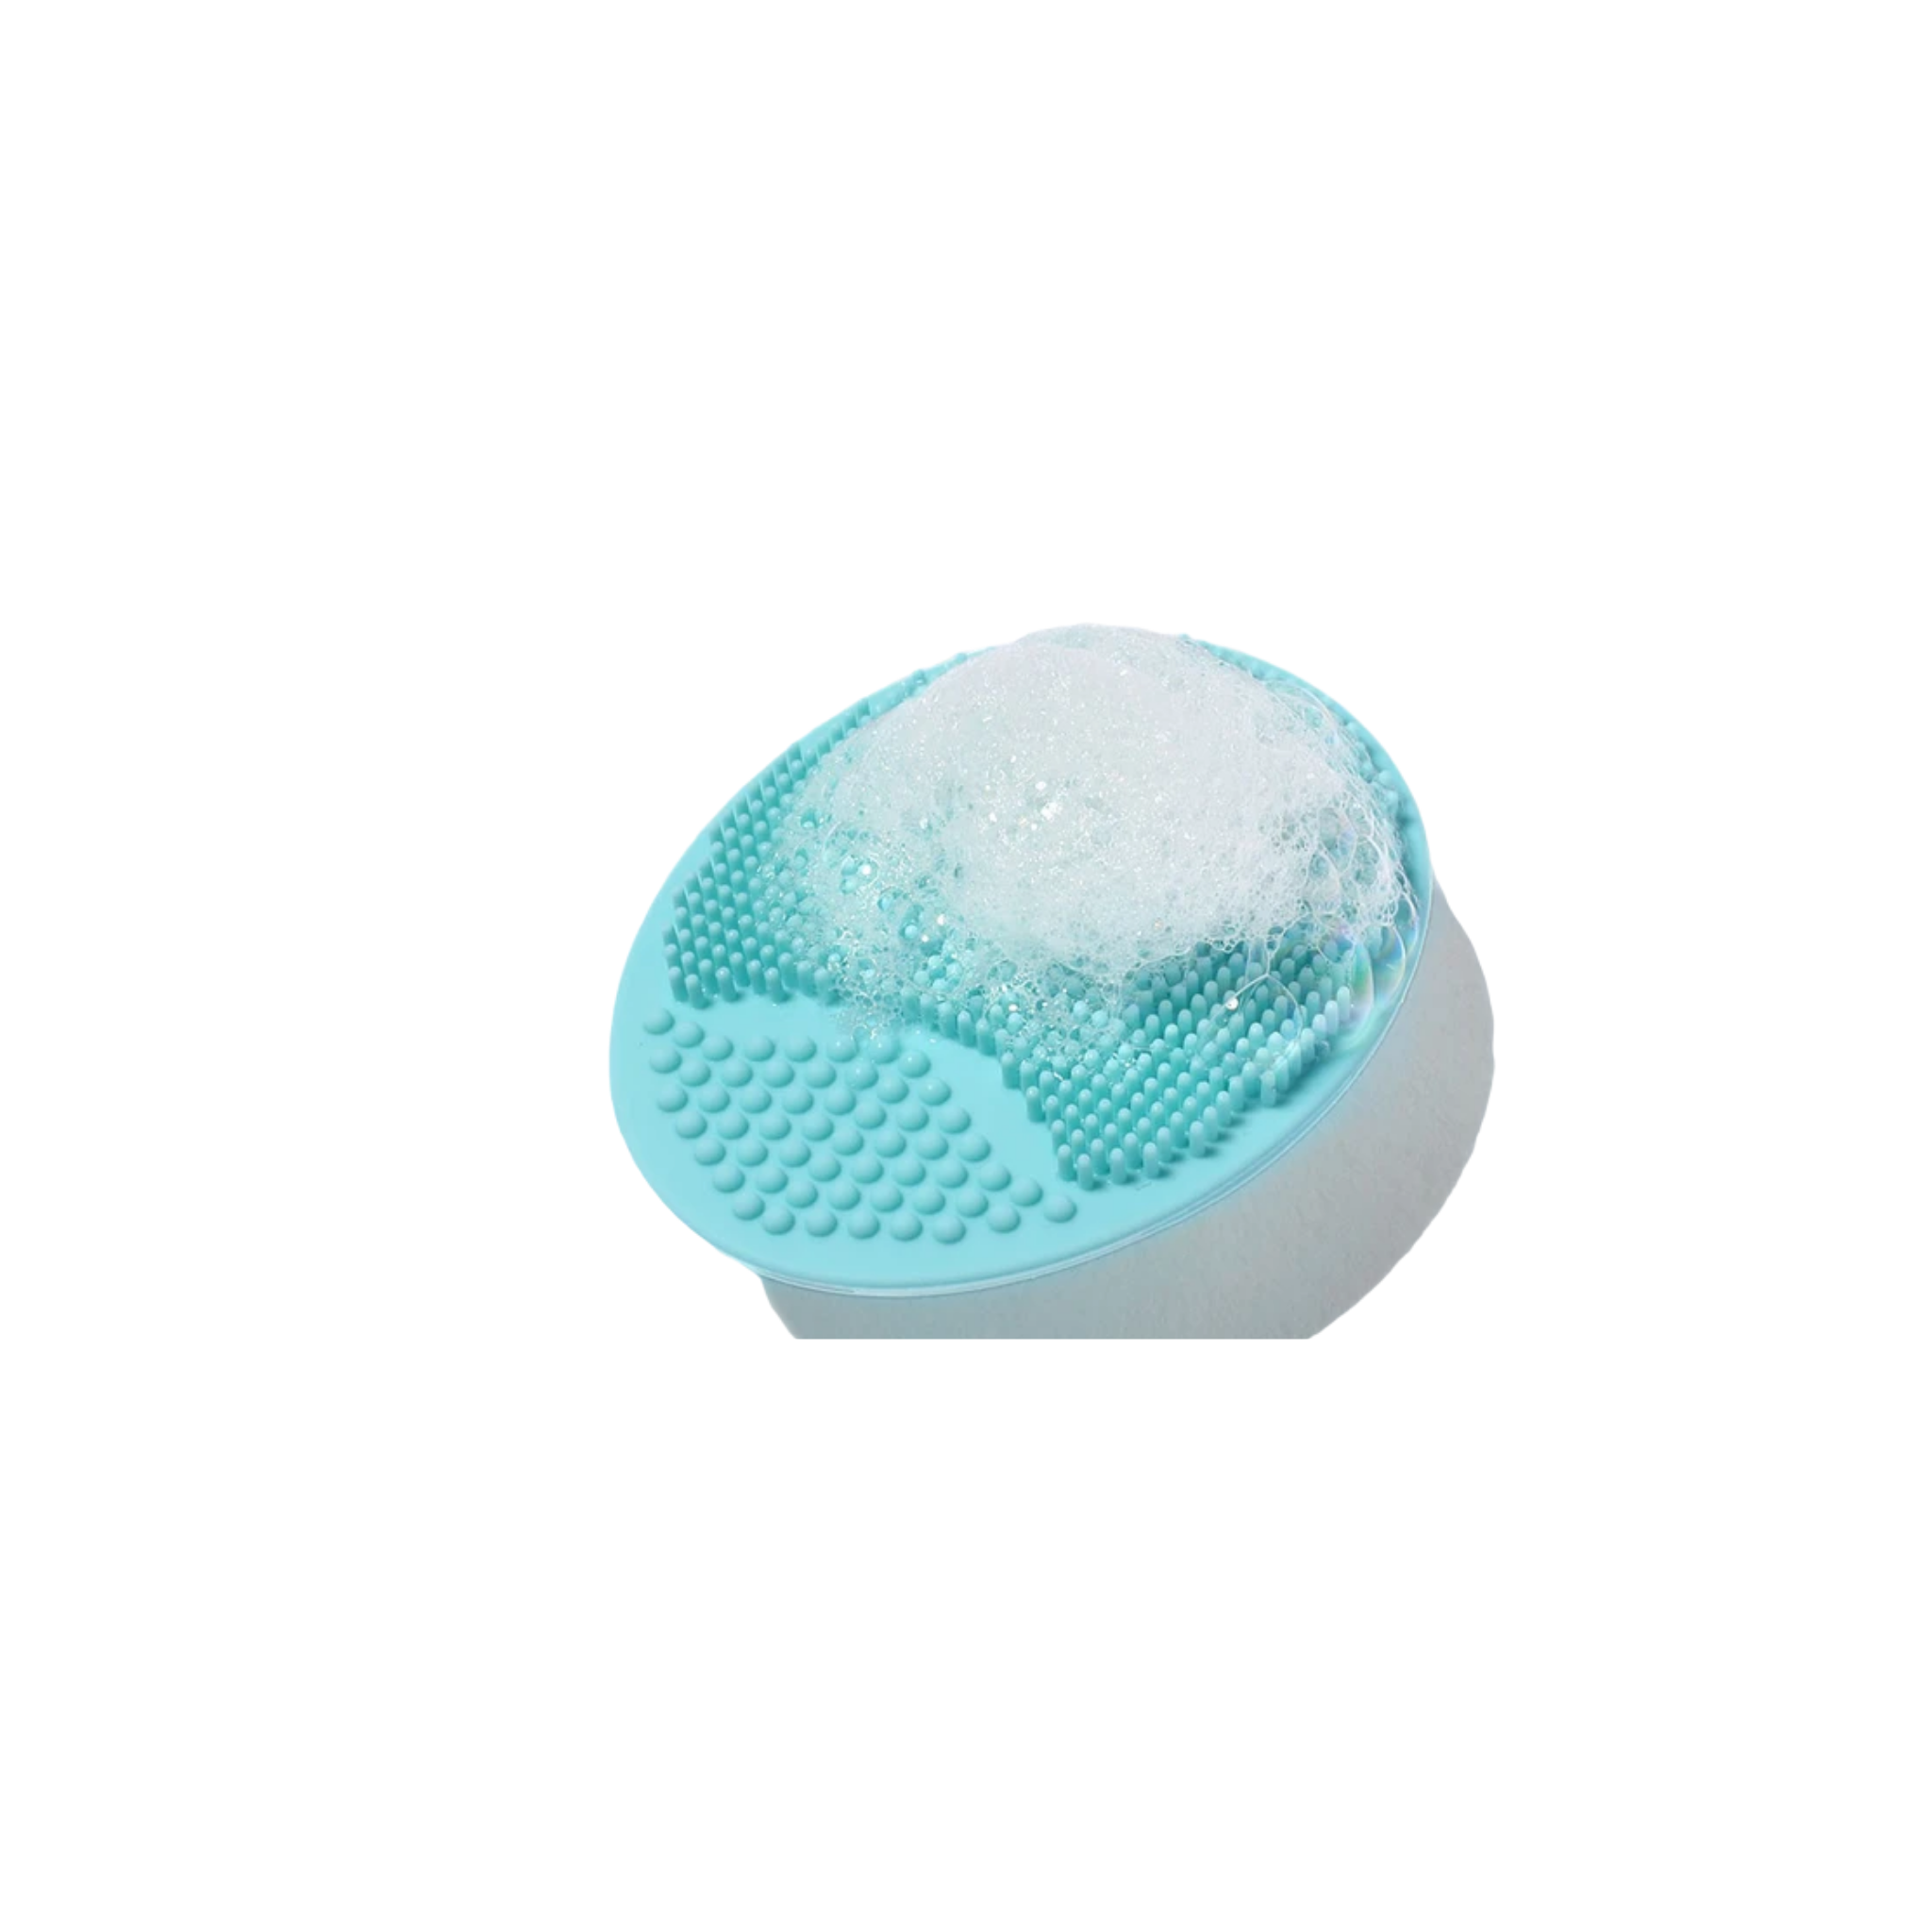 SCRUBBY FACIAL CLEANSING PAD